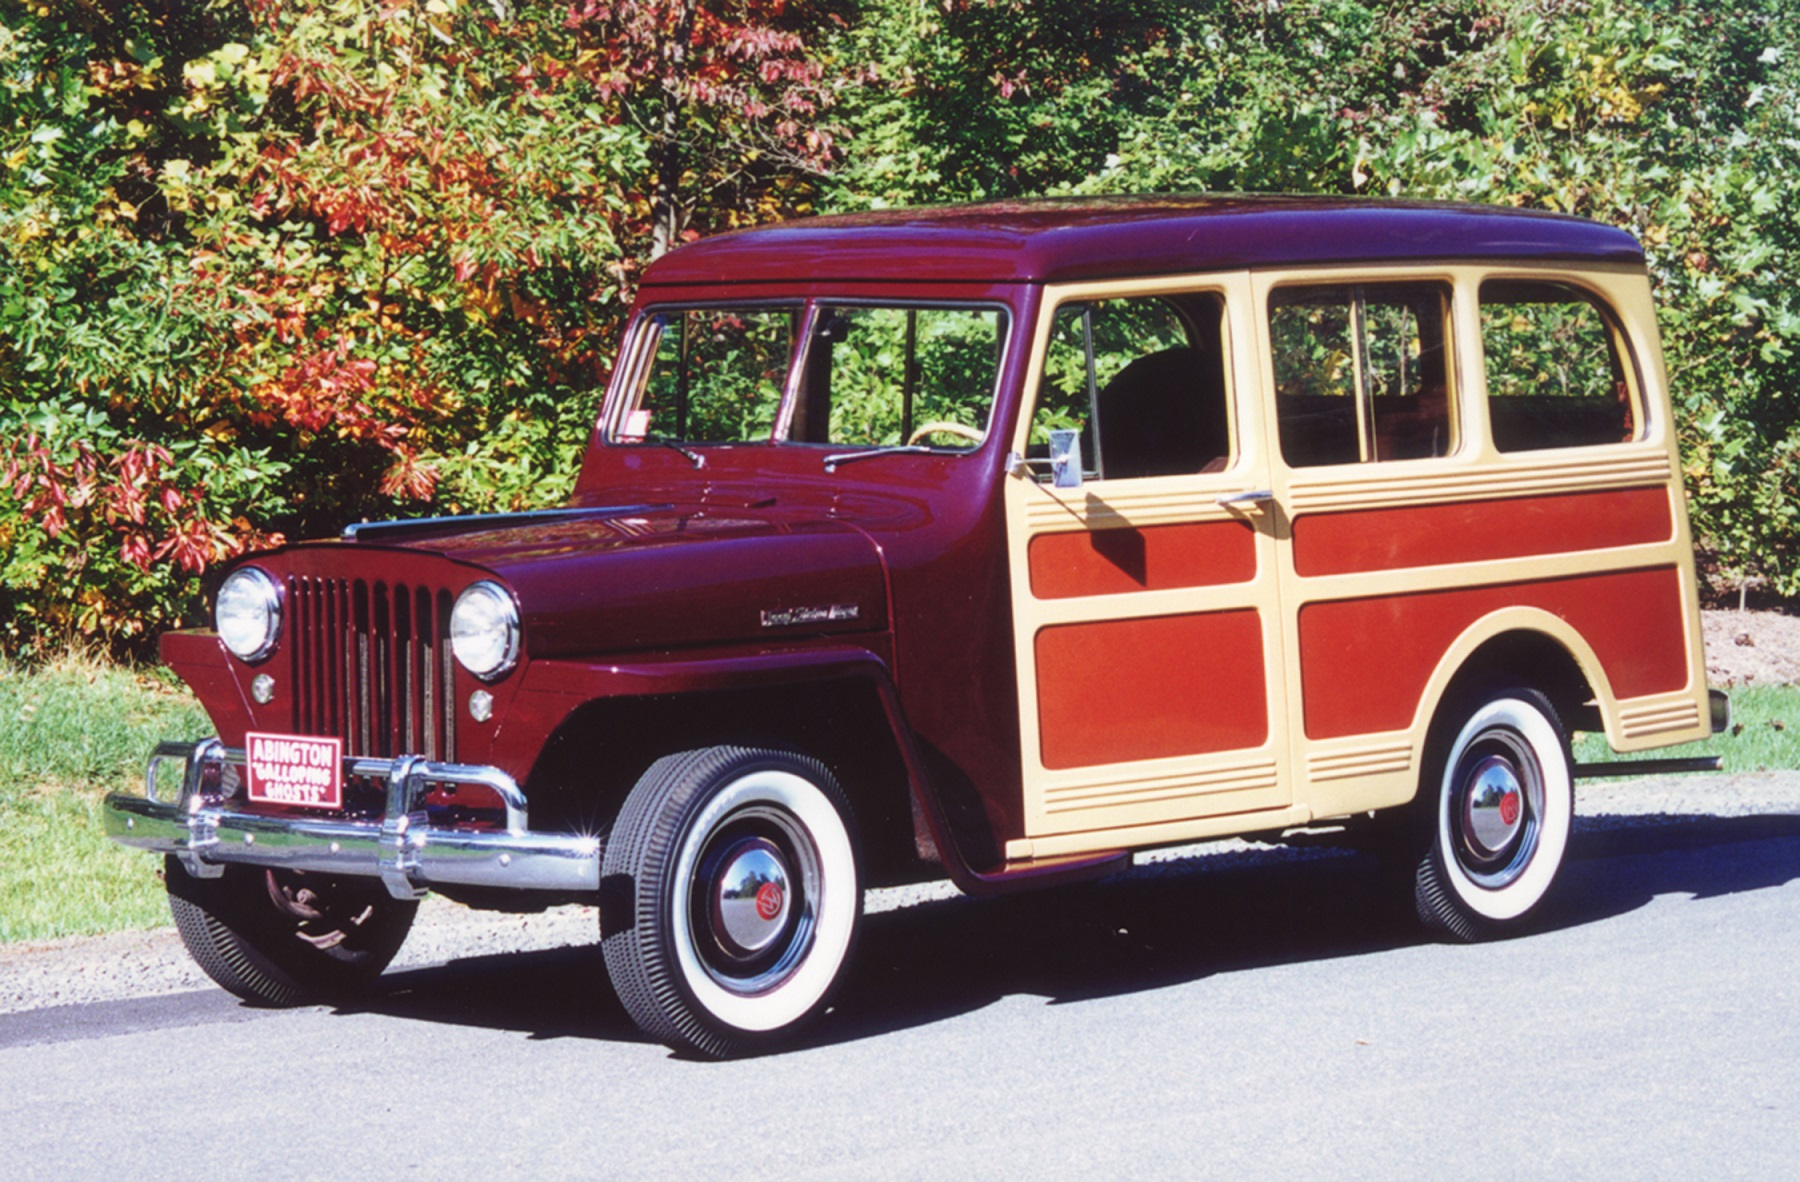 1948 Willys Jeep Wagon A Throwback To High School Classic 1953 Military The Steel Bodied Vehicle Had Nose Of And Was Powered By 134 Cubic Inch L Head Four Cylinder Engine That Produced 63 Horsepower